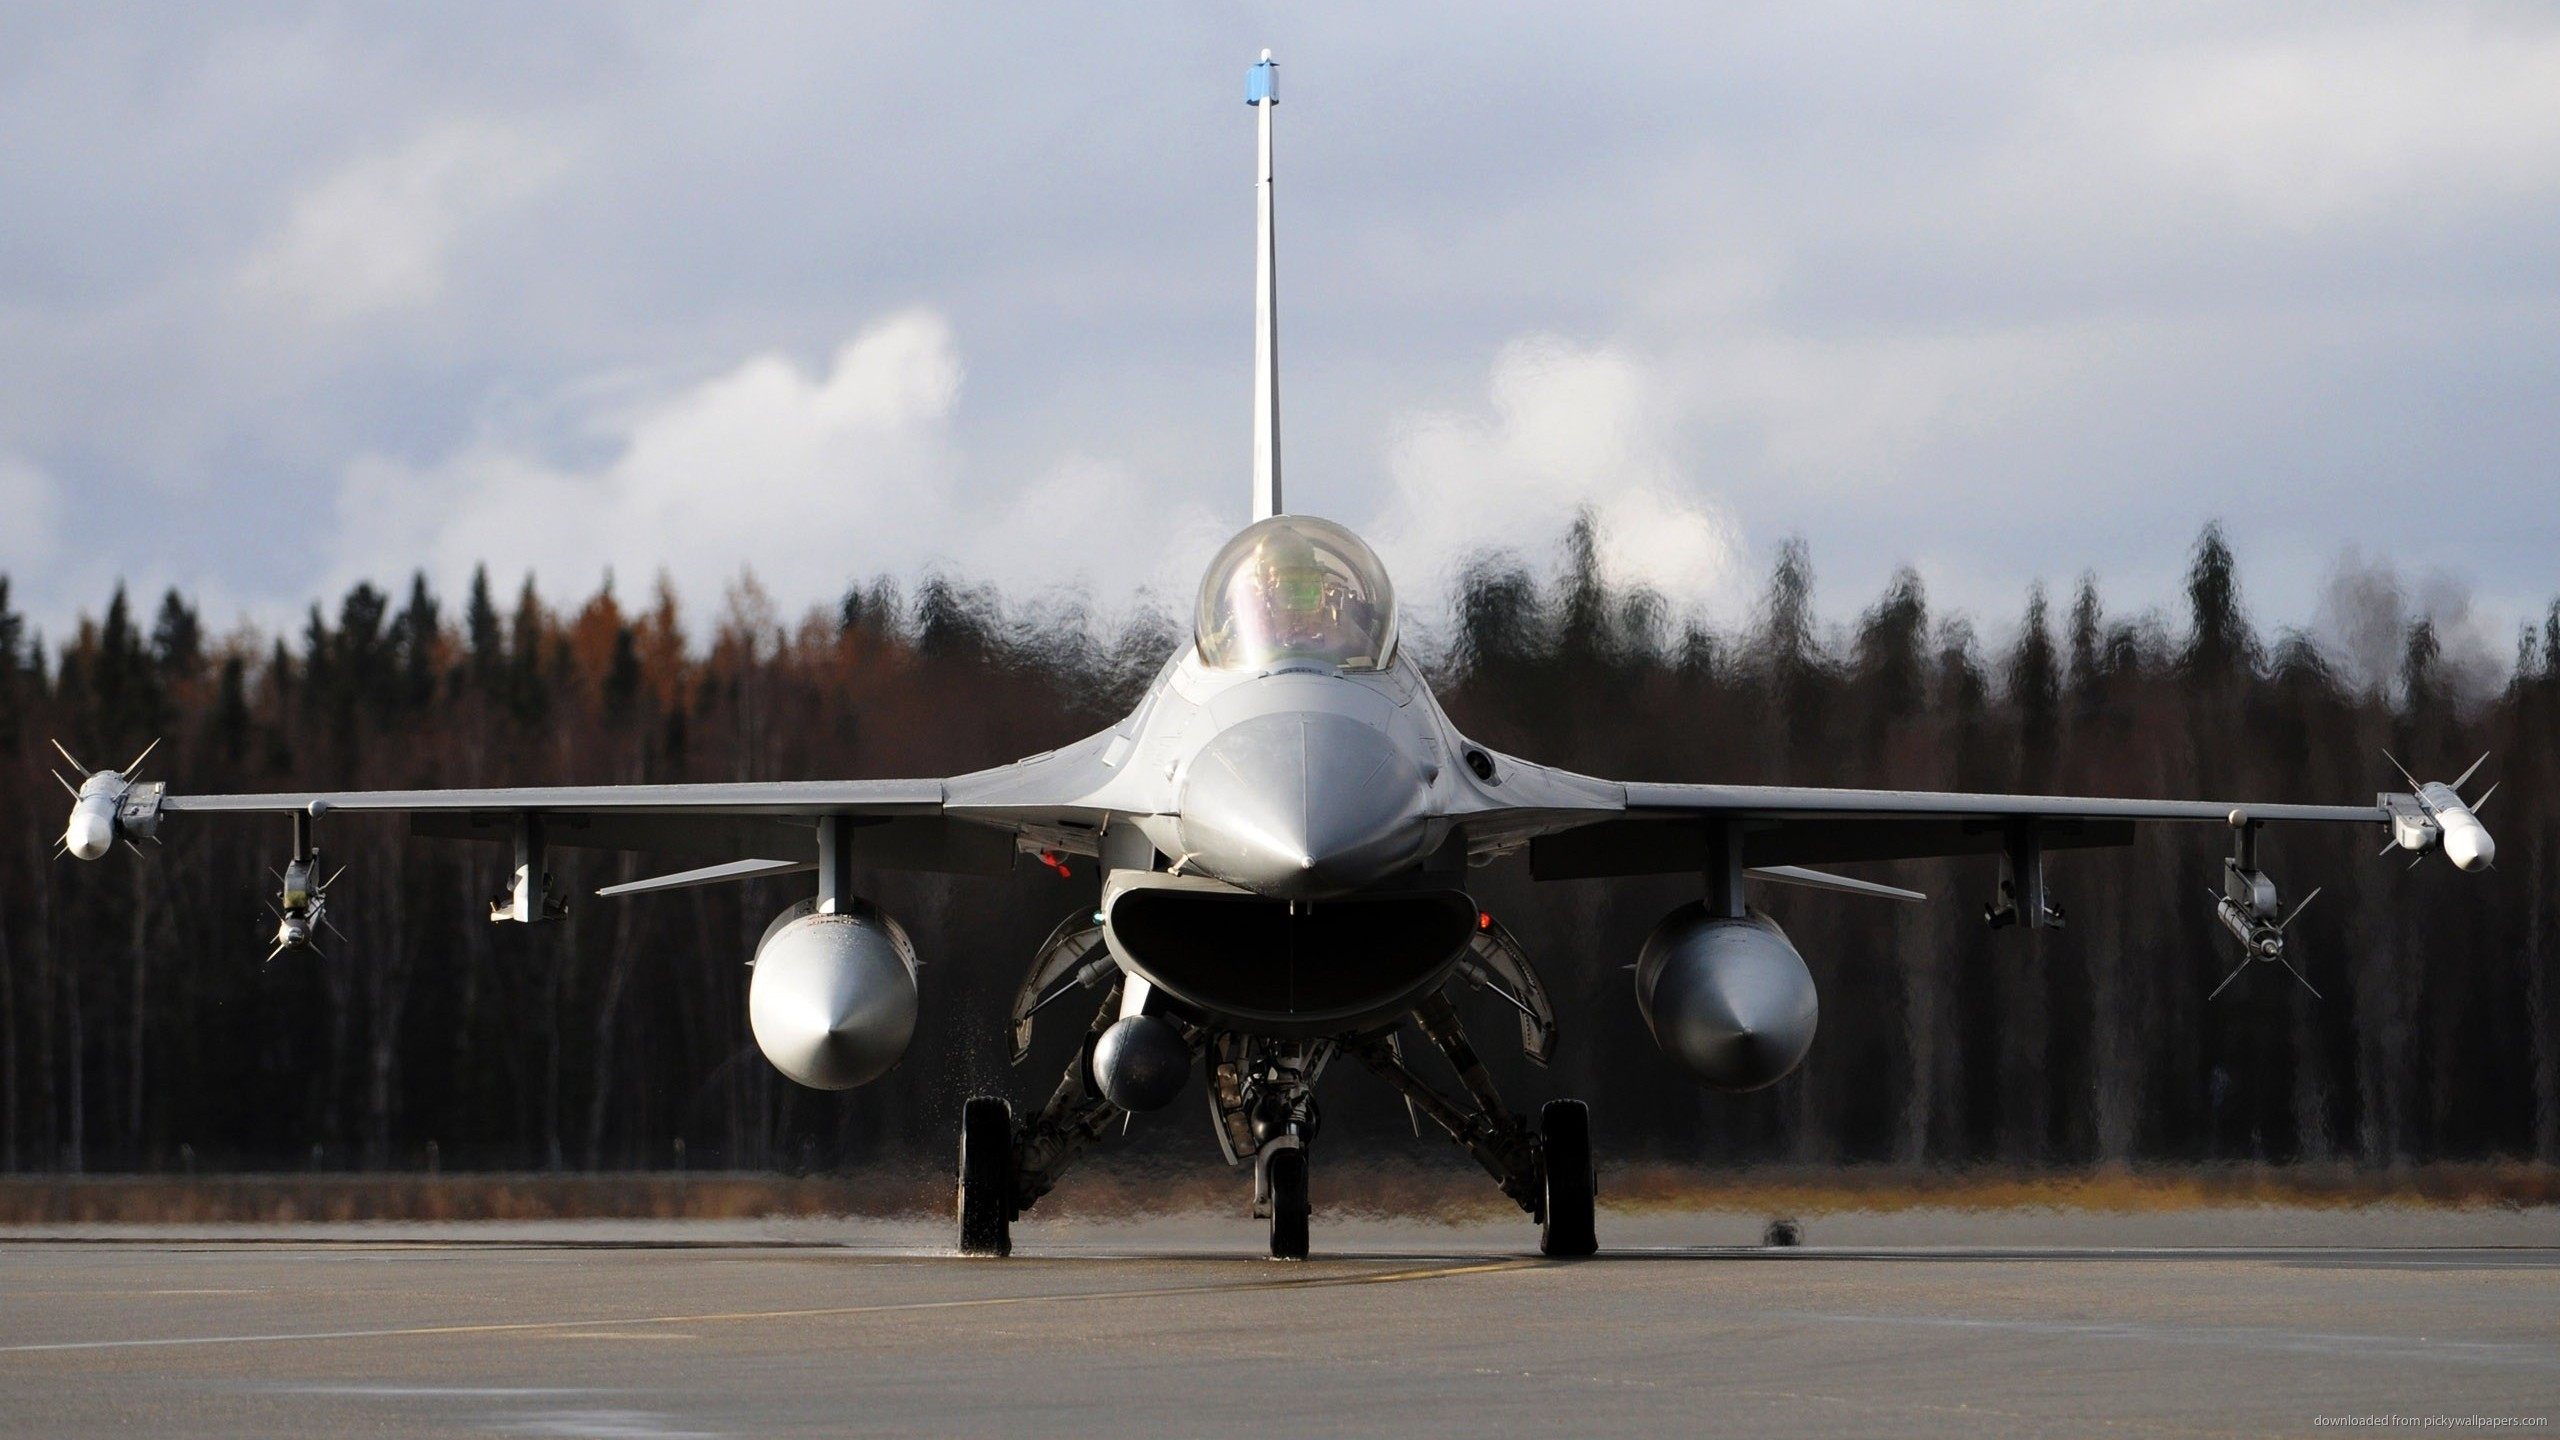 f-16-fighting-falcon-at-runway-front-view.jpg (2560×1440) | F16 Fighter |  Pinterest | Falcons, City wallpaper and Military aircraft